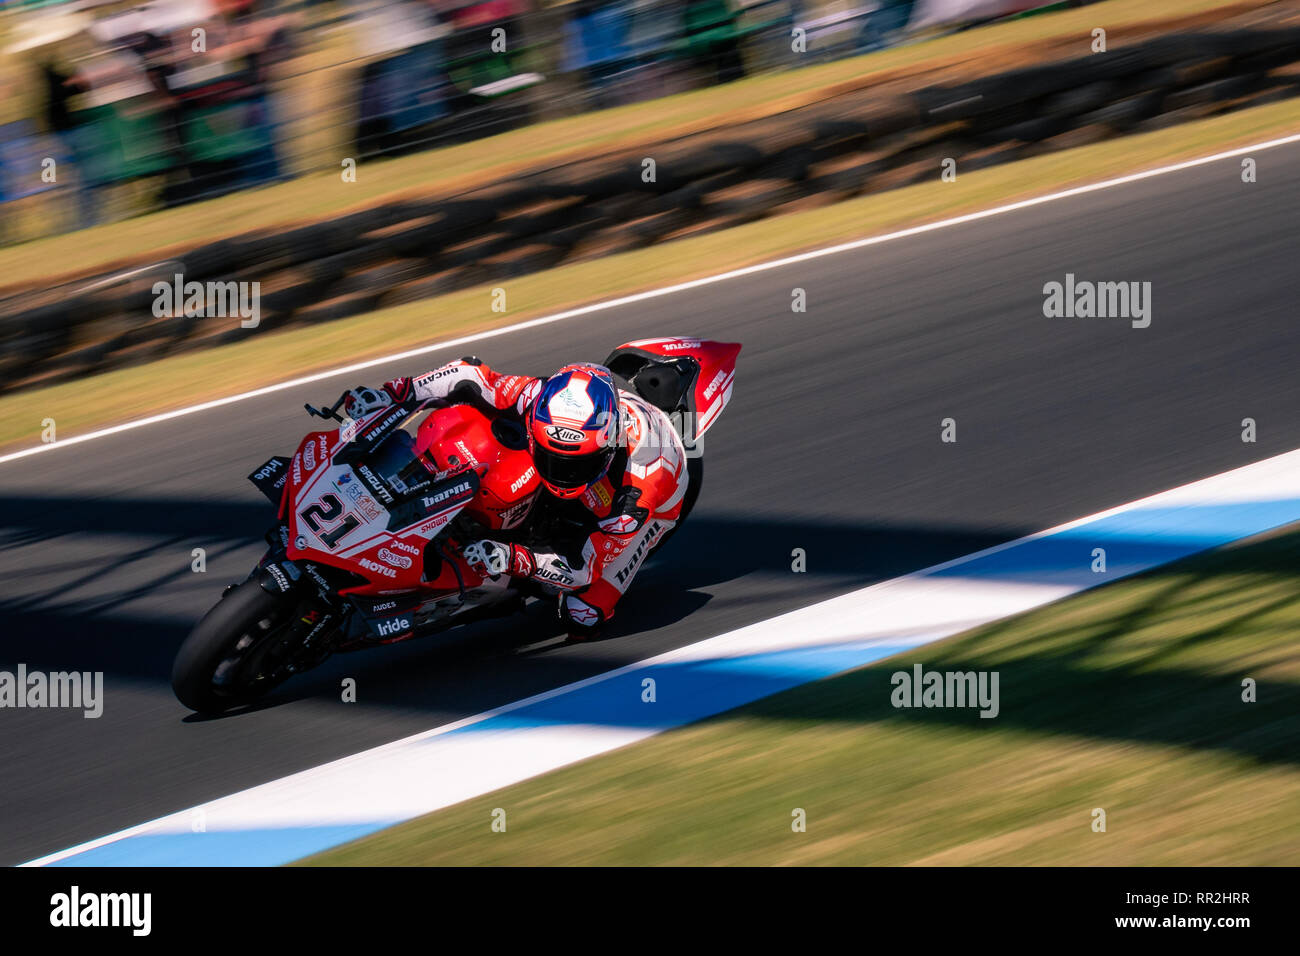 Melbourne, Australia. 24th Feb, 2019. MELBOURNE, AUSTRALIA - FEBRUARY 24: Michael Ruben Rinaldi 21 riding for GULF ALTHEA BMW Racing Teamduring the 2019 MOTUL FIM Superbike World Championship at Phillip Island, Australia on February 24 2019. Credit: Dave Hewison Sports/Alamy Live News Stock Photo